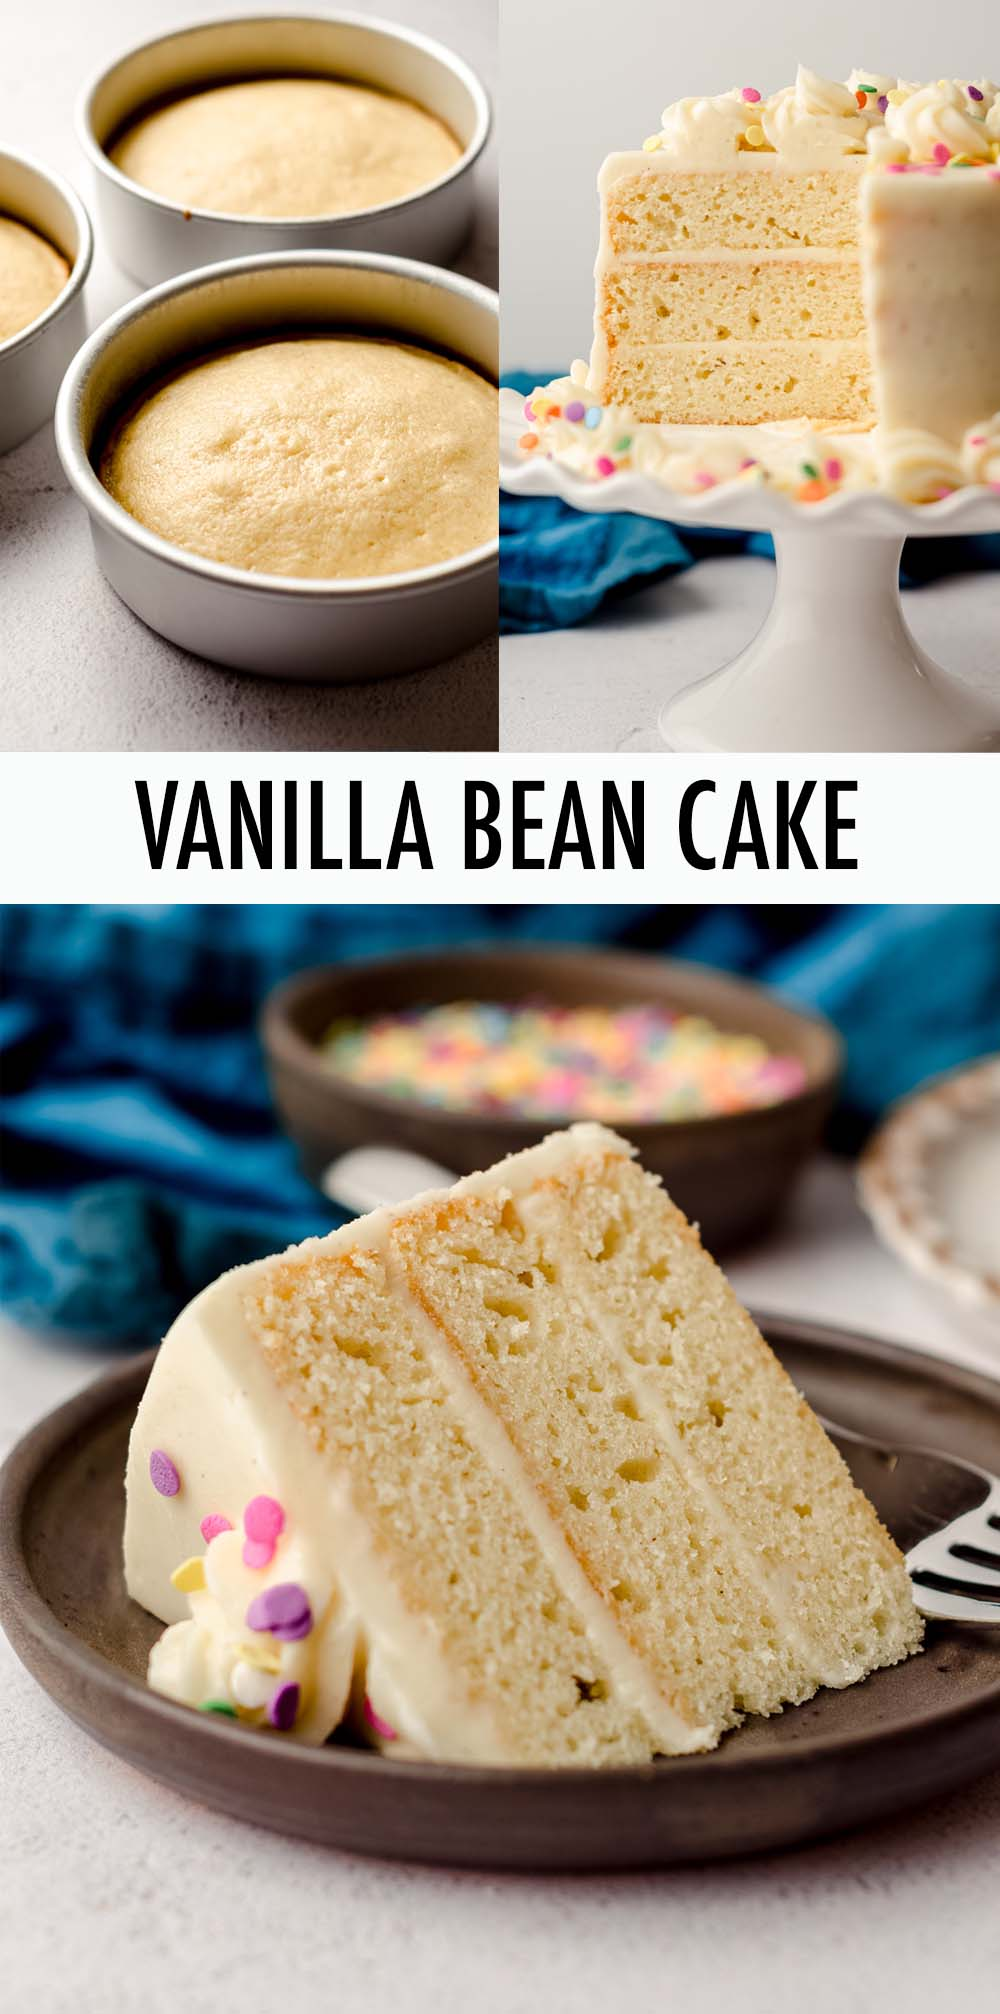 Learn how to make a two or three layer 6 inch cake from any of your favorite cupcake or 8 inch cake recipes, including this 6 inch vanilla bean cake recipe. This size cake is perfect for small gatherings and smash cakes for 1st birthdays.